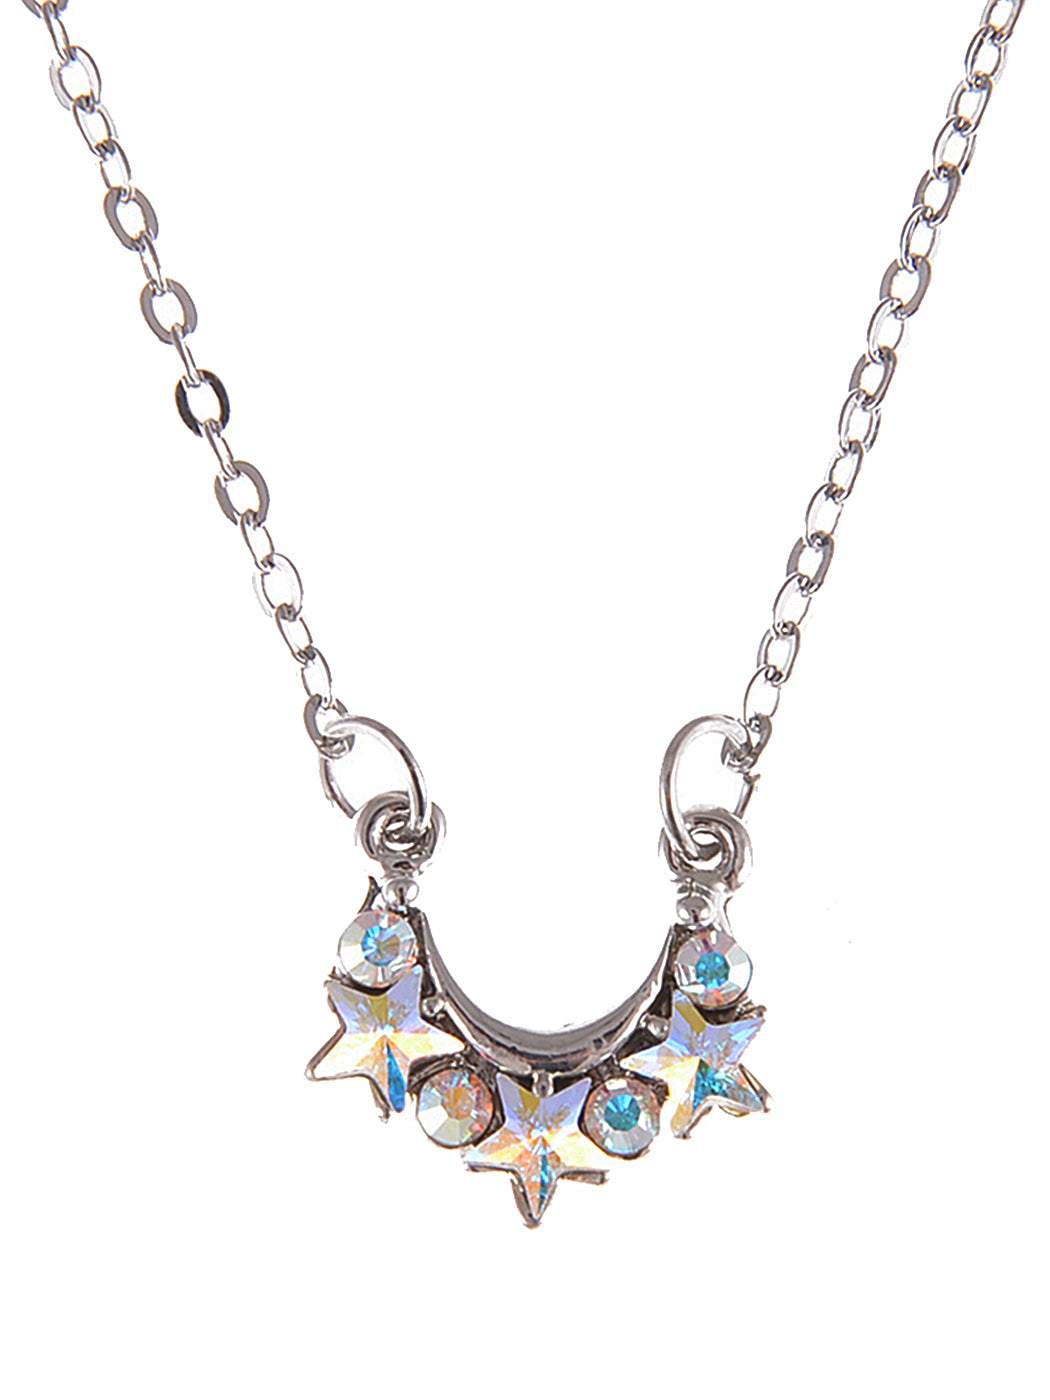 Swarovski Crystal Shooting Star Hot Galaxy Crest Aurora Boreale Pendant Necklace